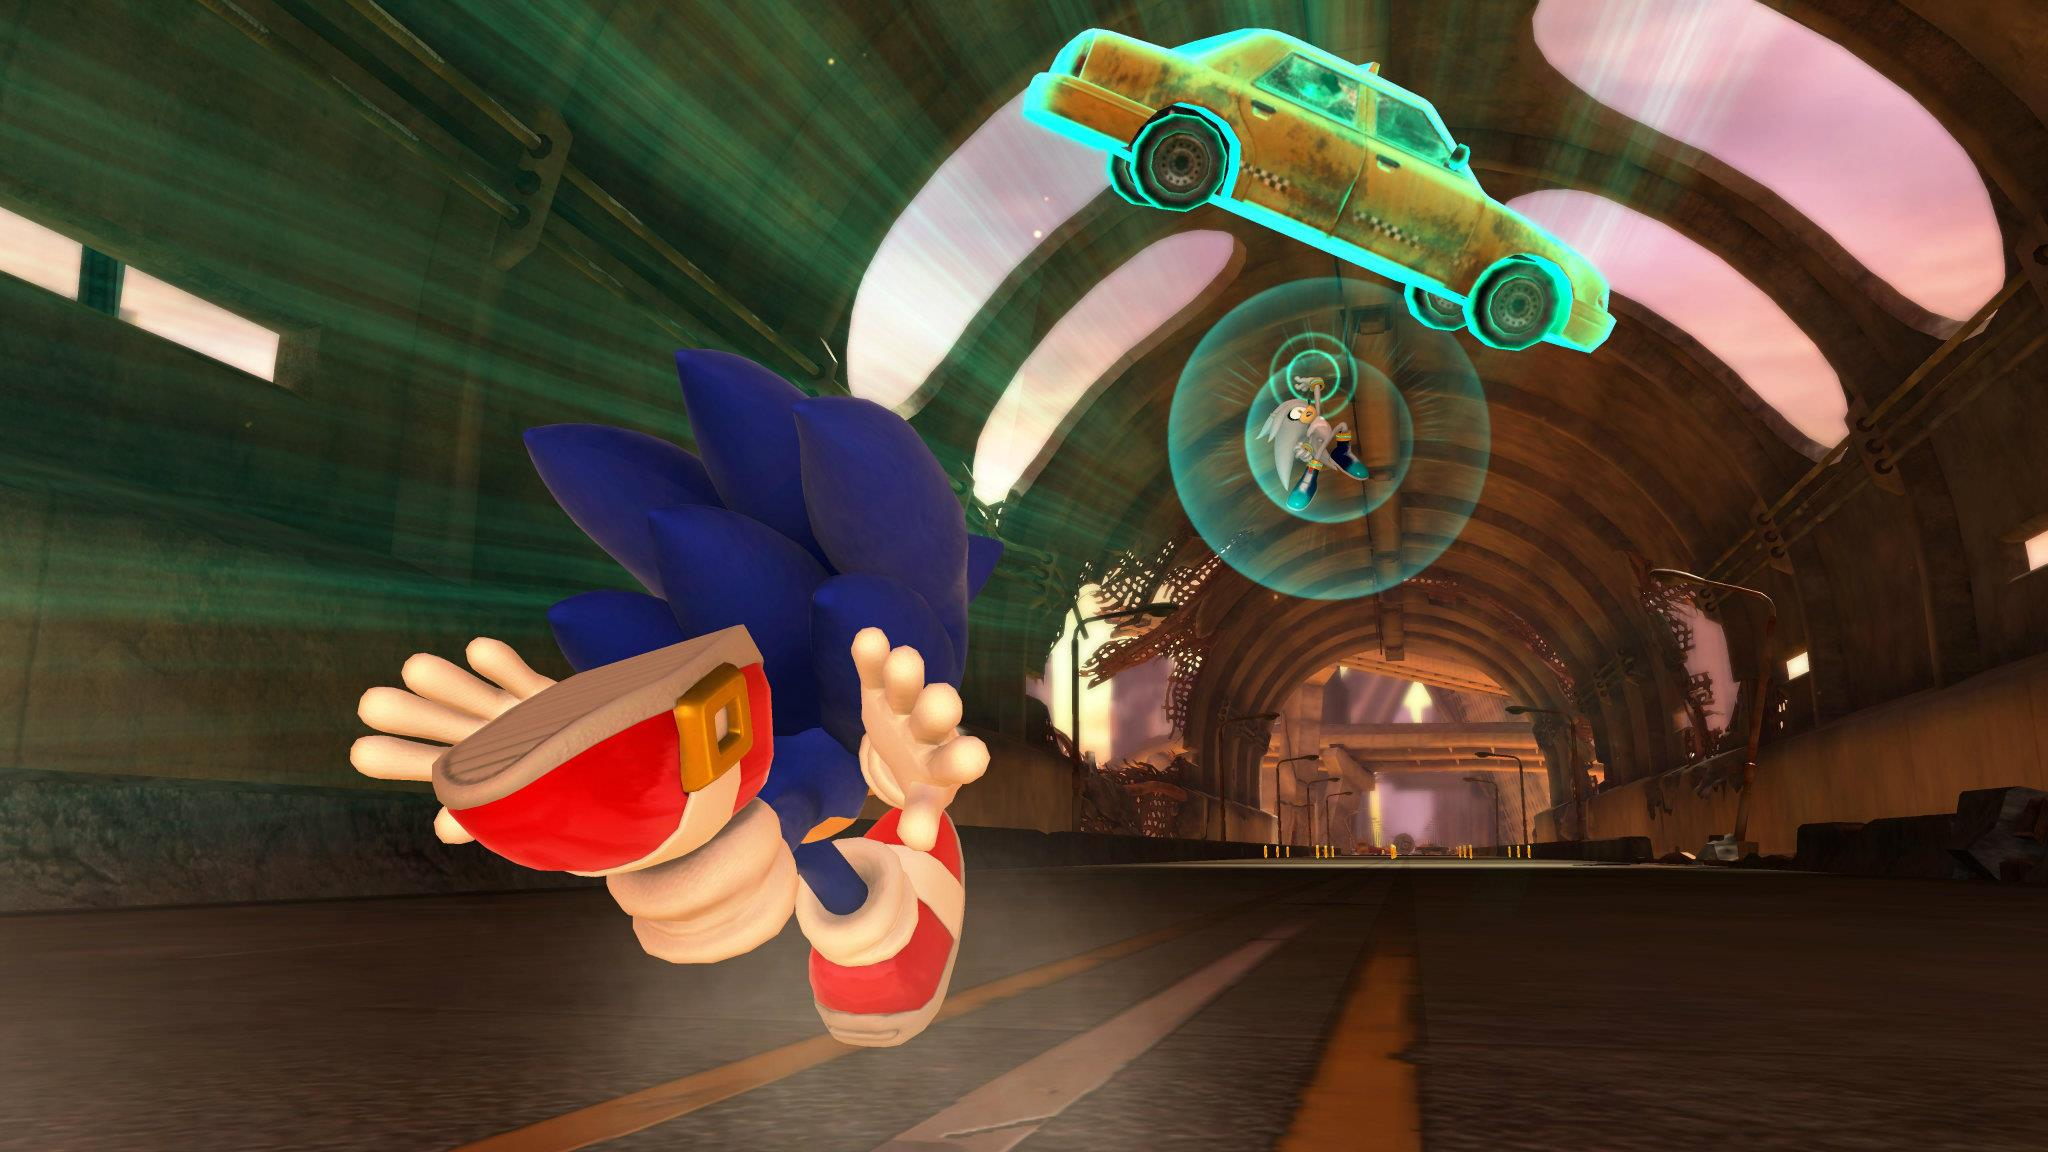 Silver The Hedgehog Revealed As A Rival In Sonic